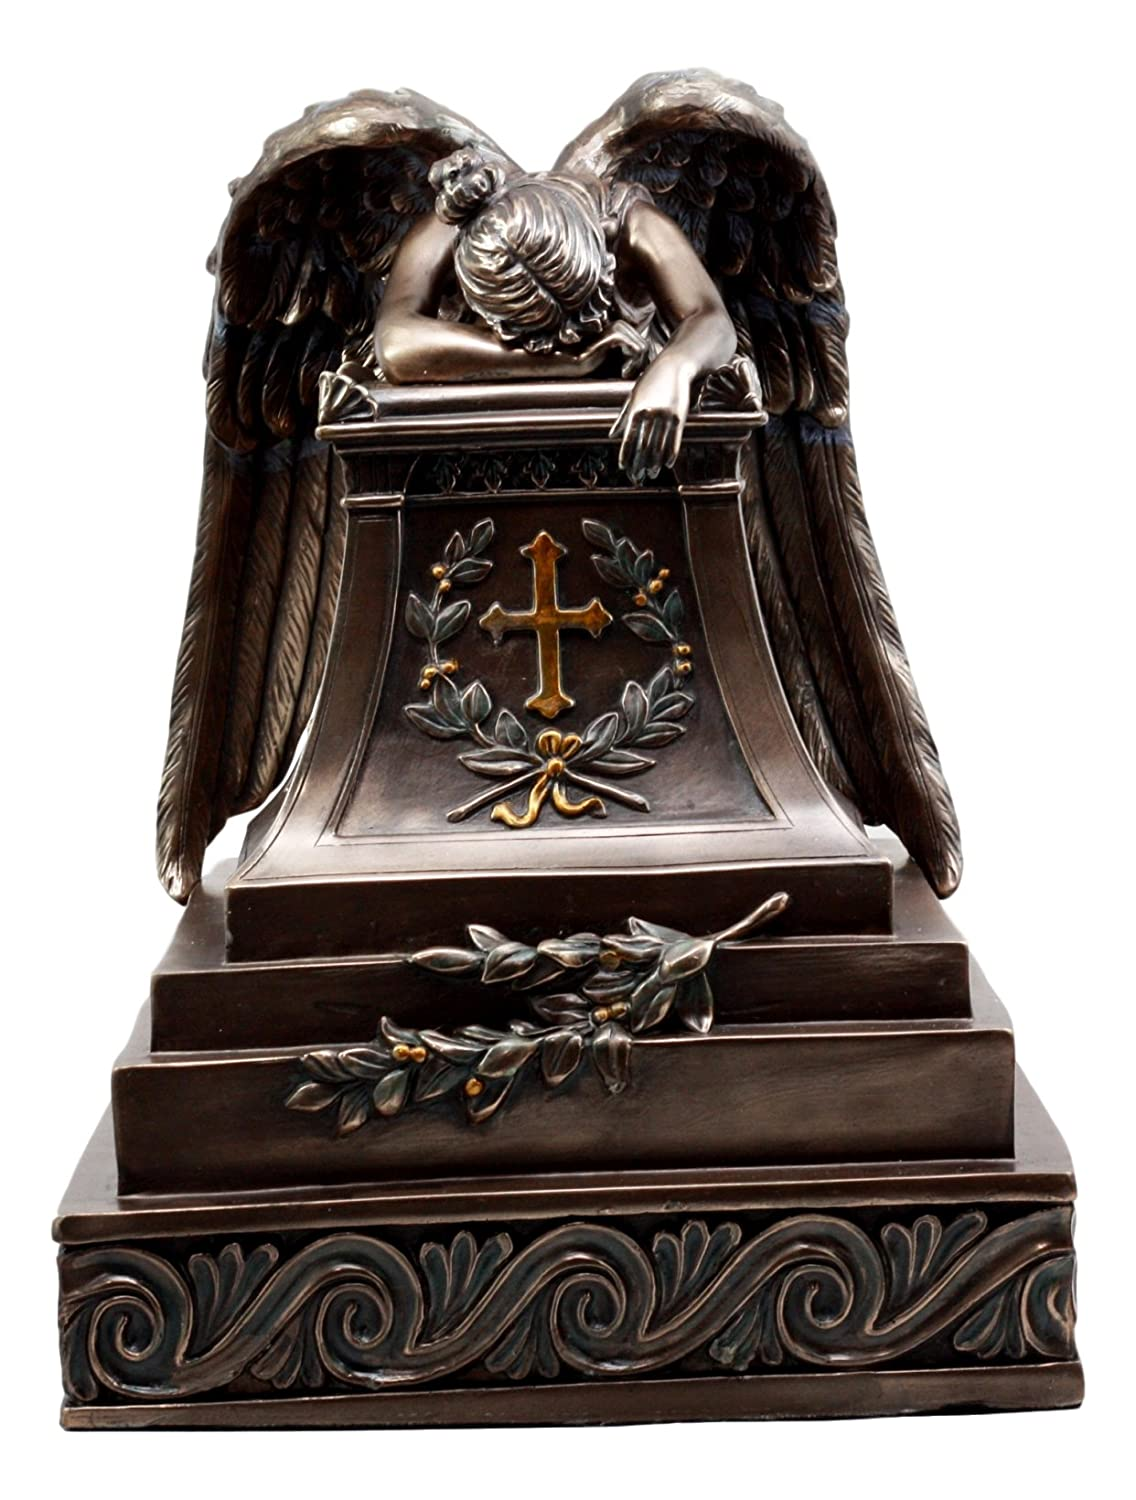 Ebros Bronzed Inspirational Guardian Mourning Angel Cremation Urn Statue 12.75 Tall 320 Cubic Inches Capacity Bottom Load Feature Decorative Figurine